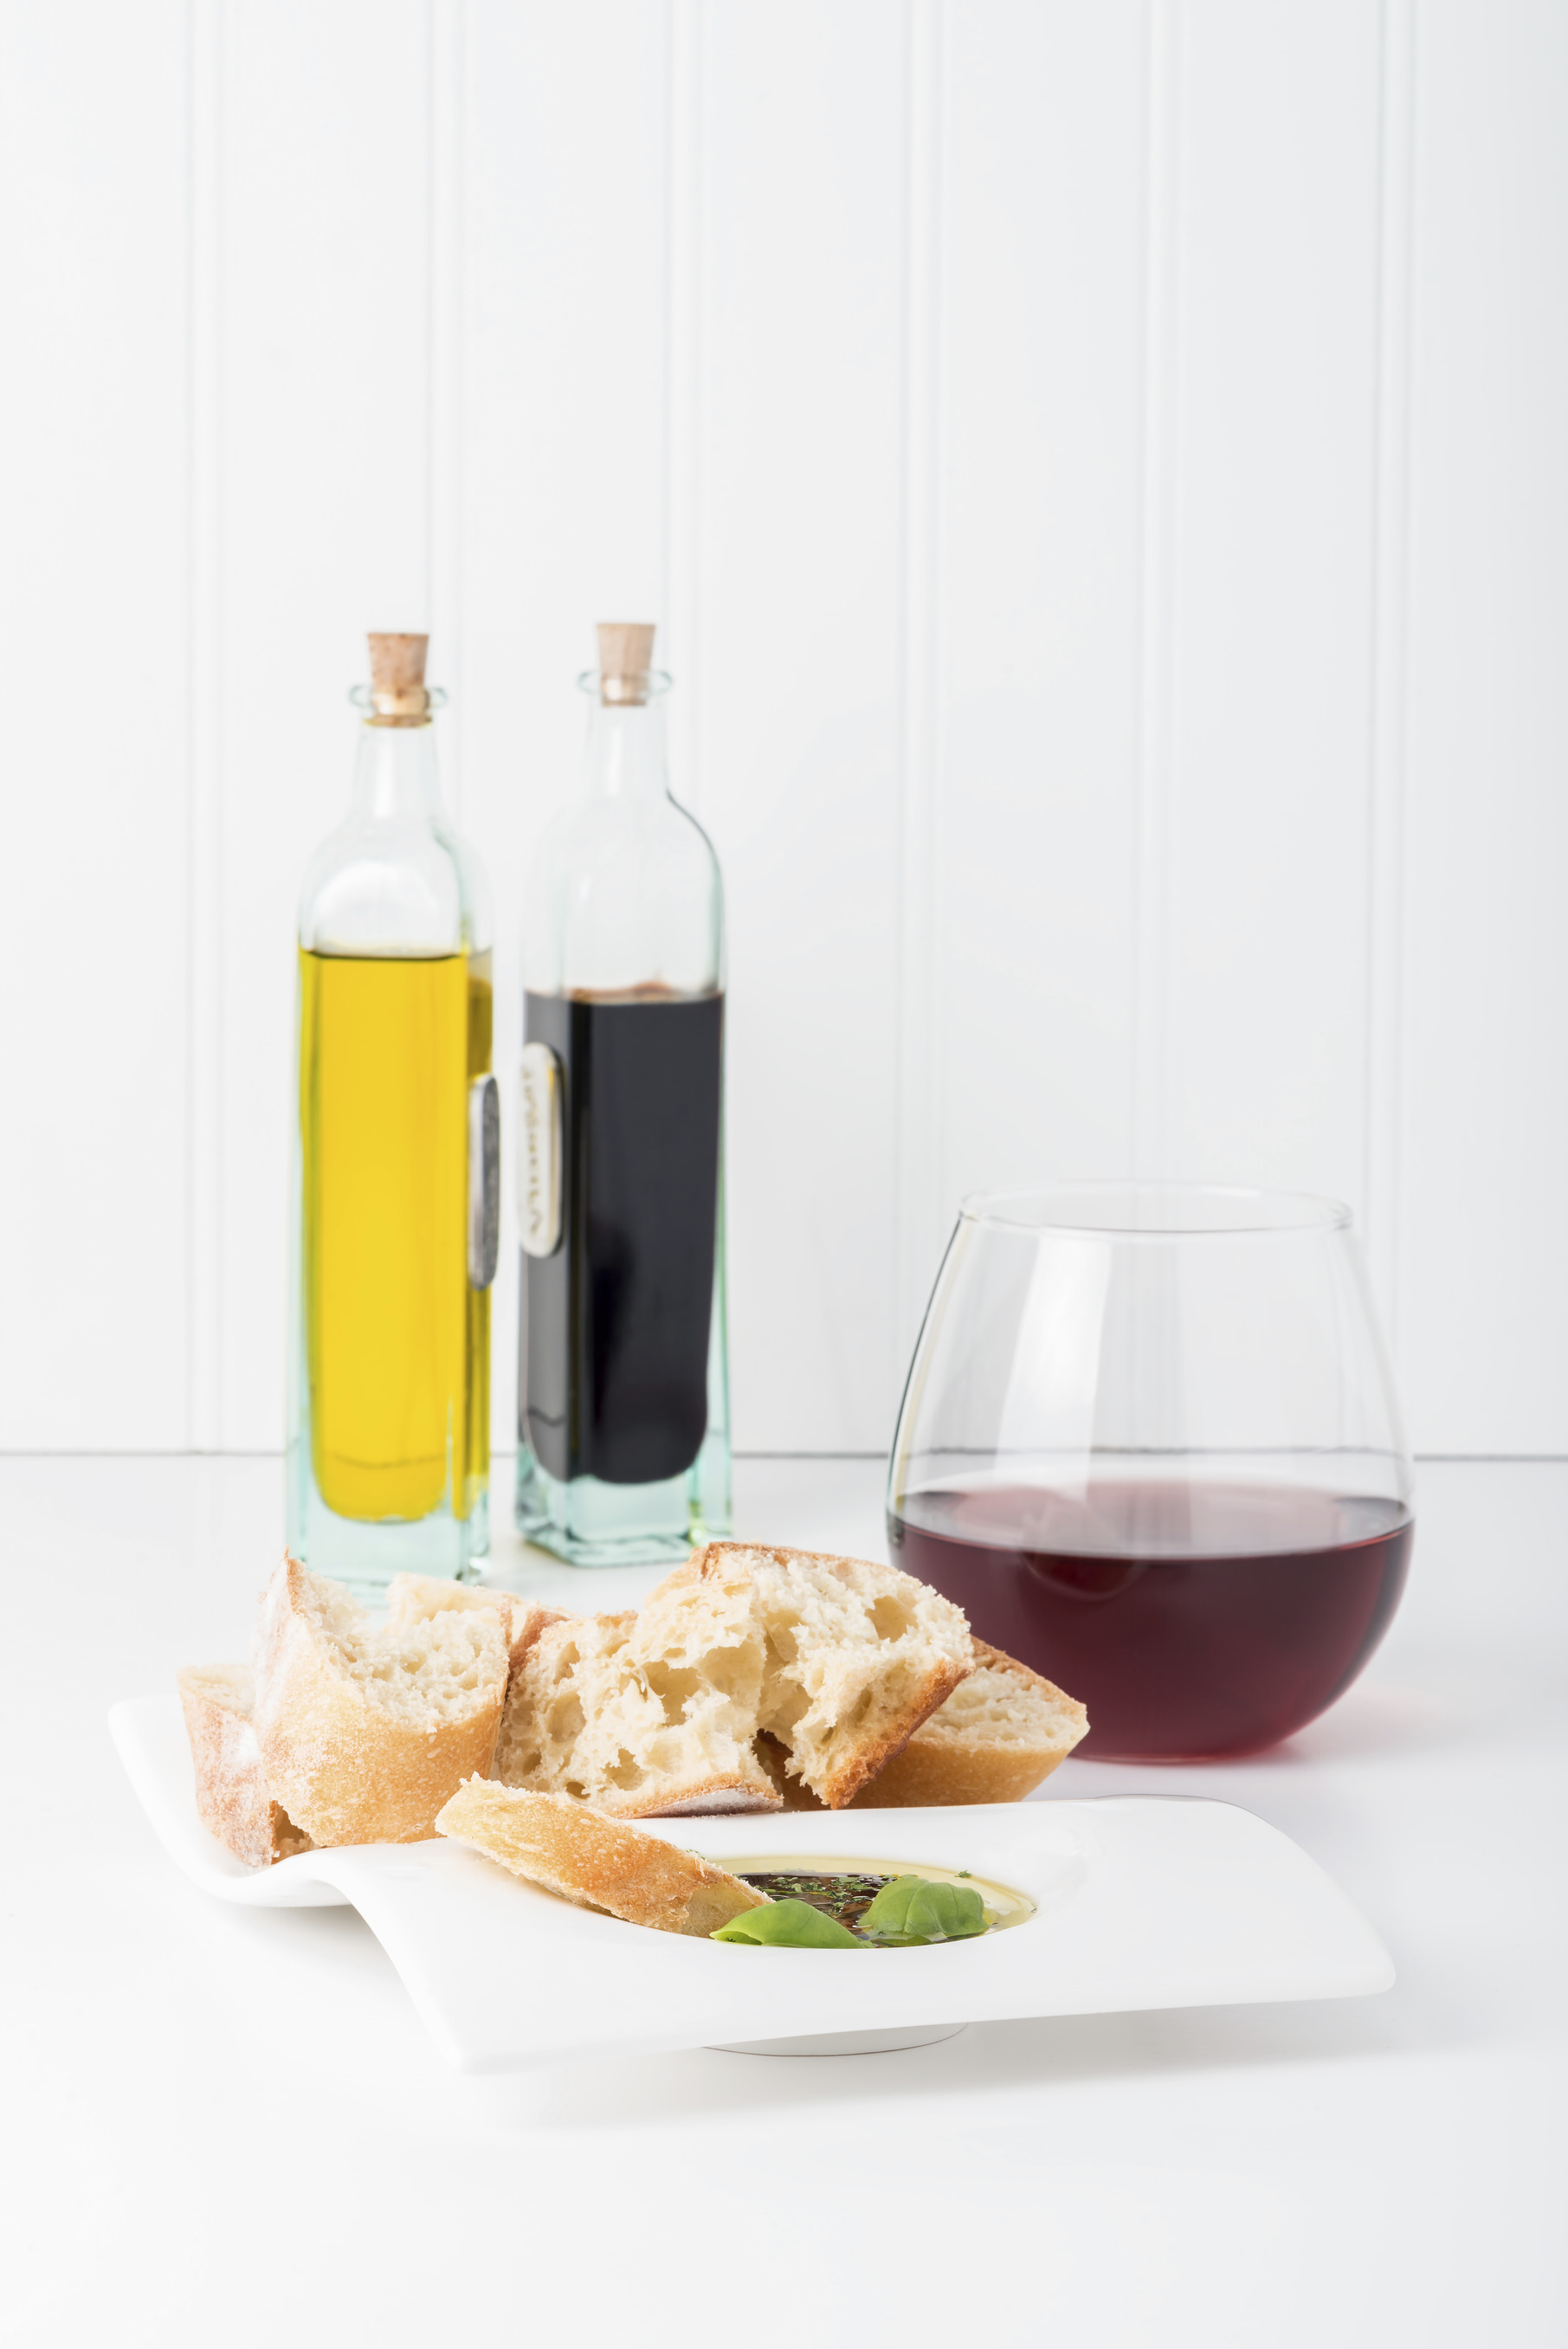 Fresh baguette with an olive oil, balsamic vinegar and fresh herb dip.